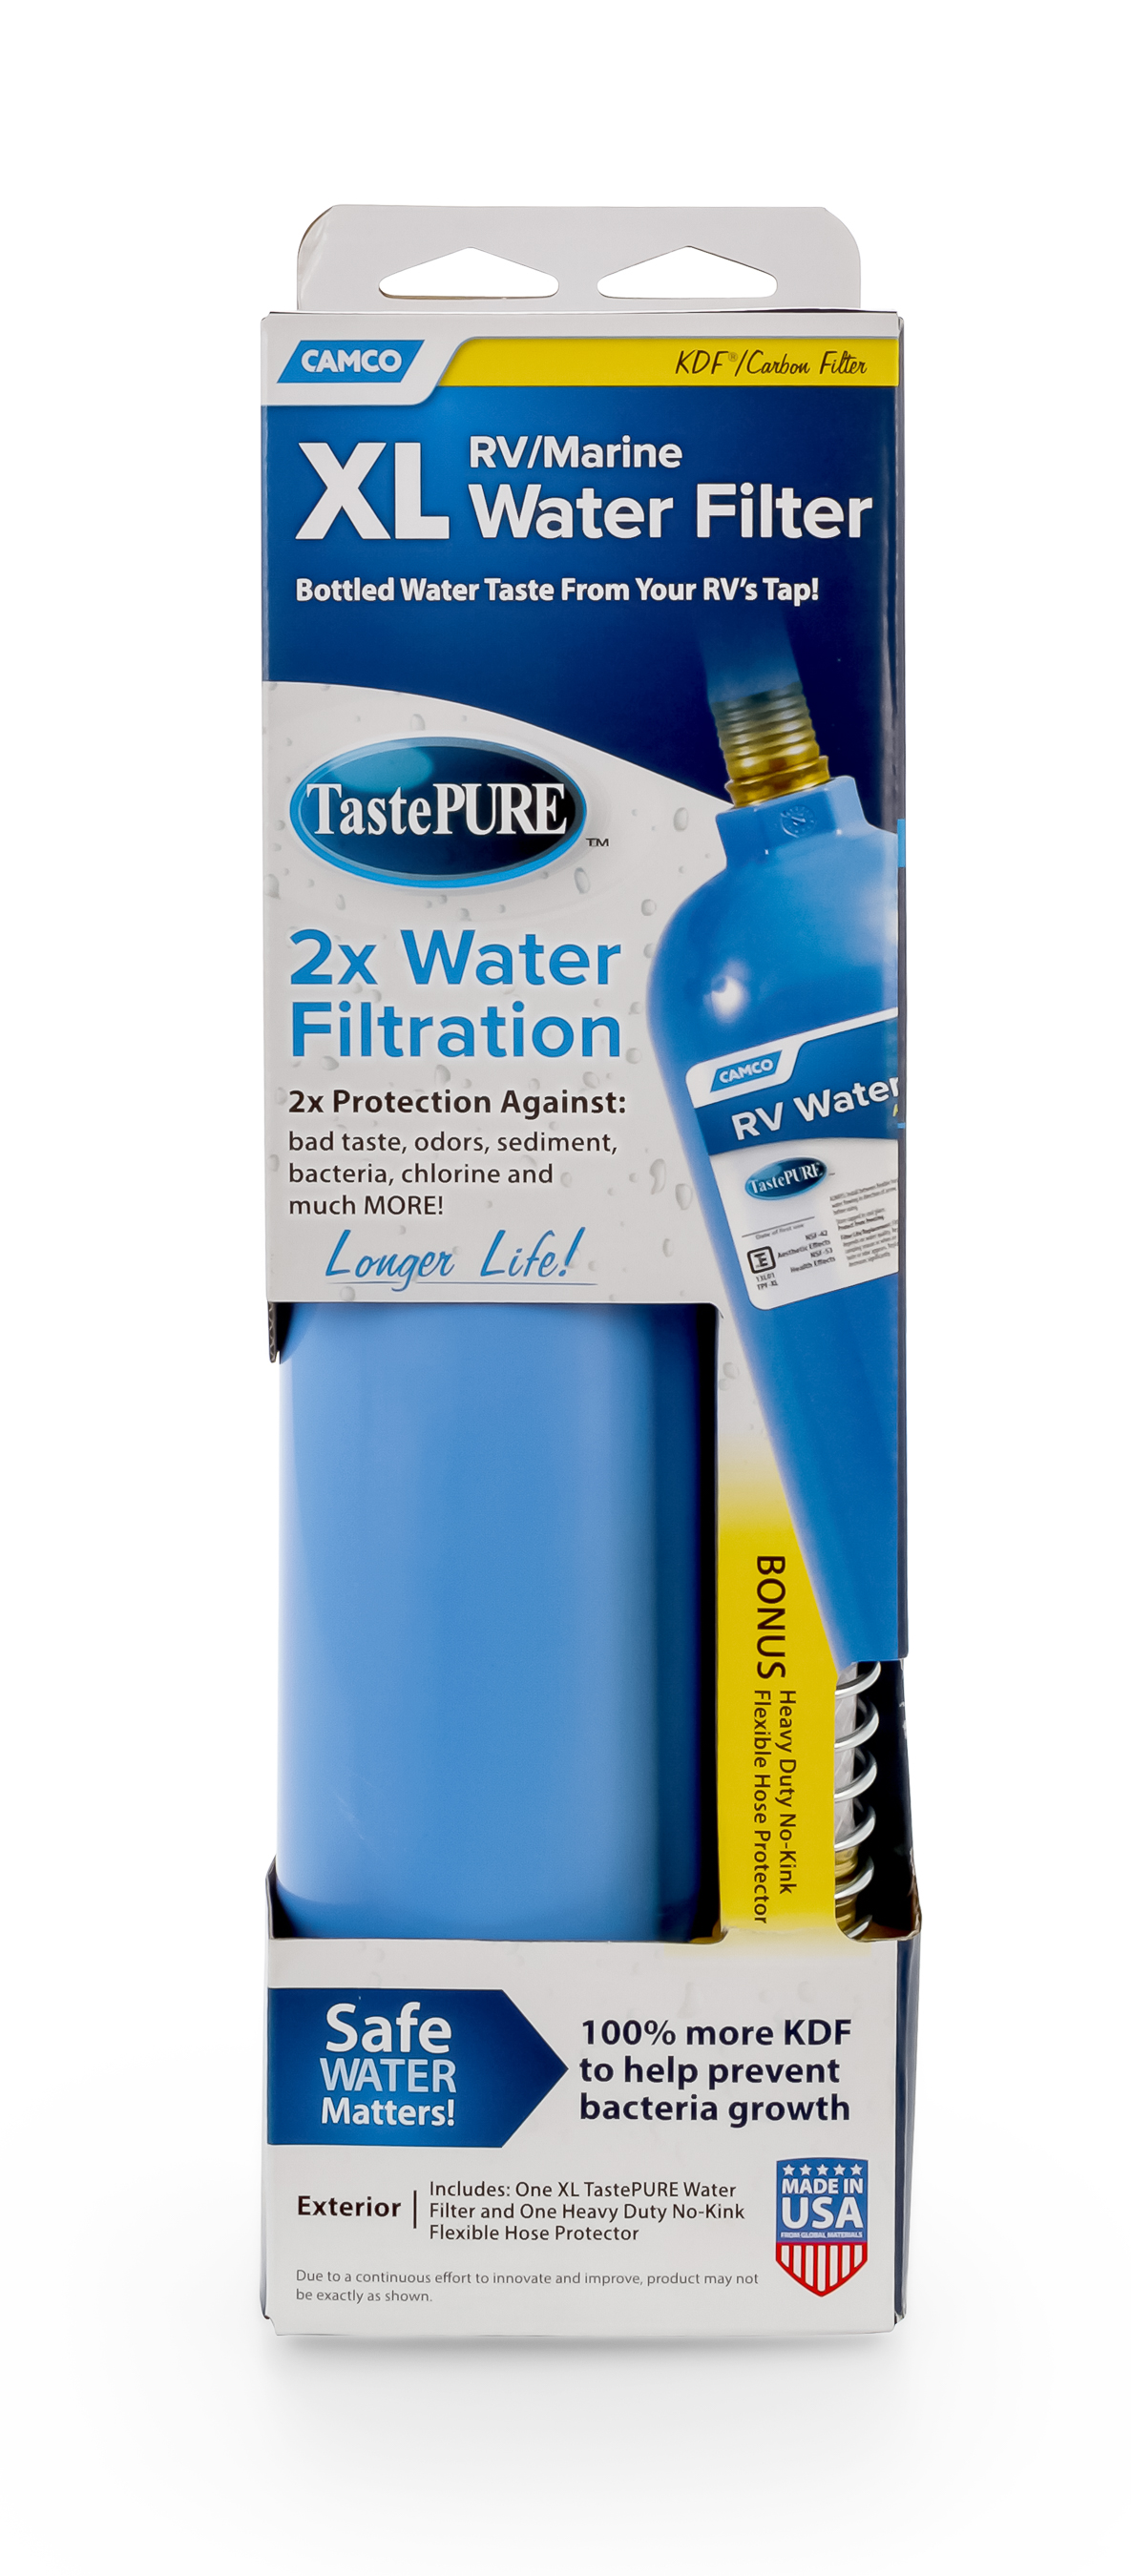 Camco 40019 Tastepure Extra Large Inline Water Filter With Flexible Hose Protector 2x As Many Gallons Greatly Reduces Bad Taste Odors Chlorine And Sediment In Drinking Water Walmart Com Walmart Com